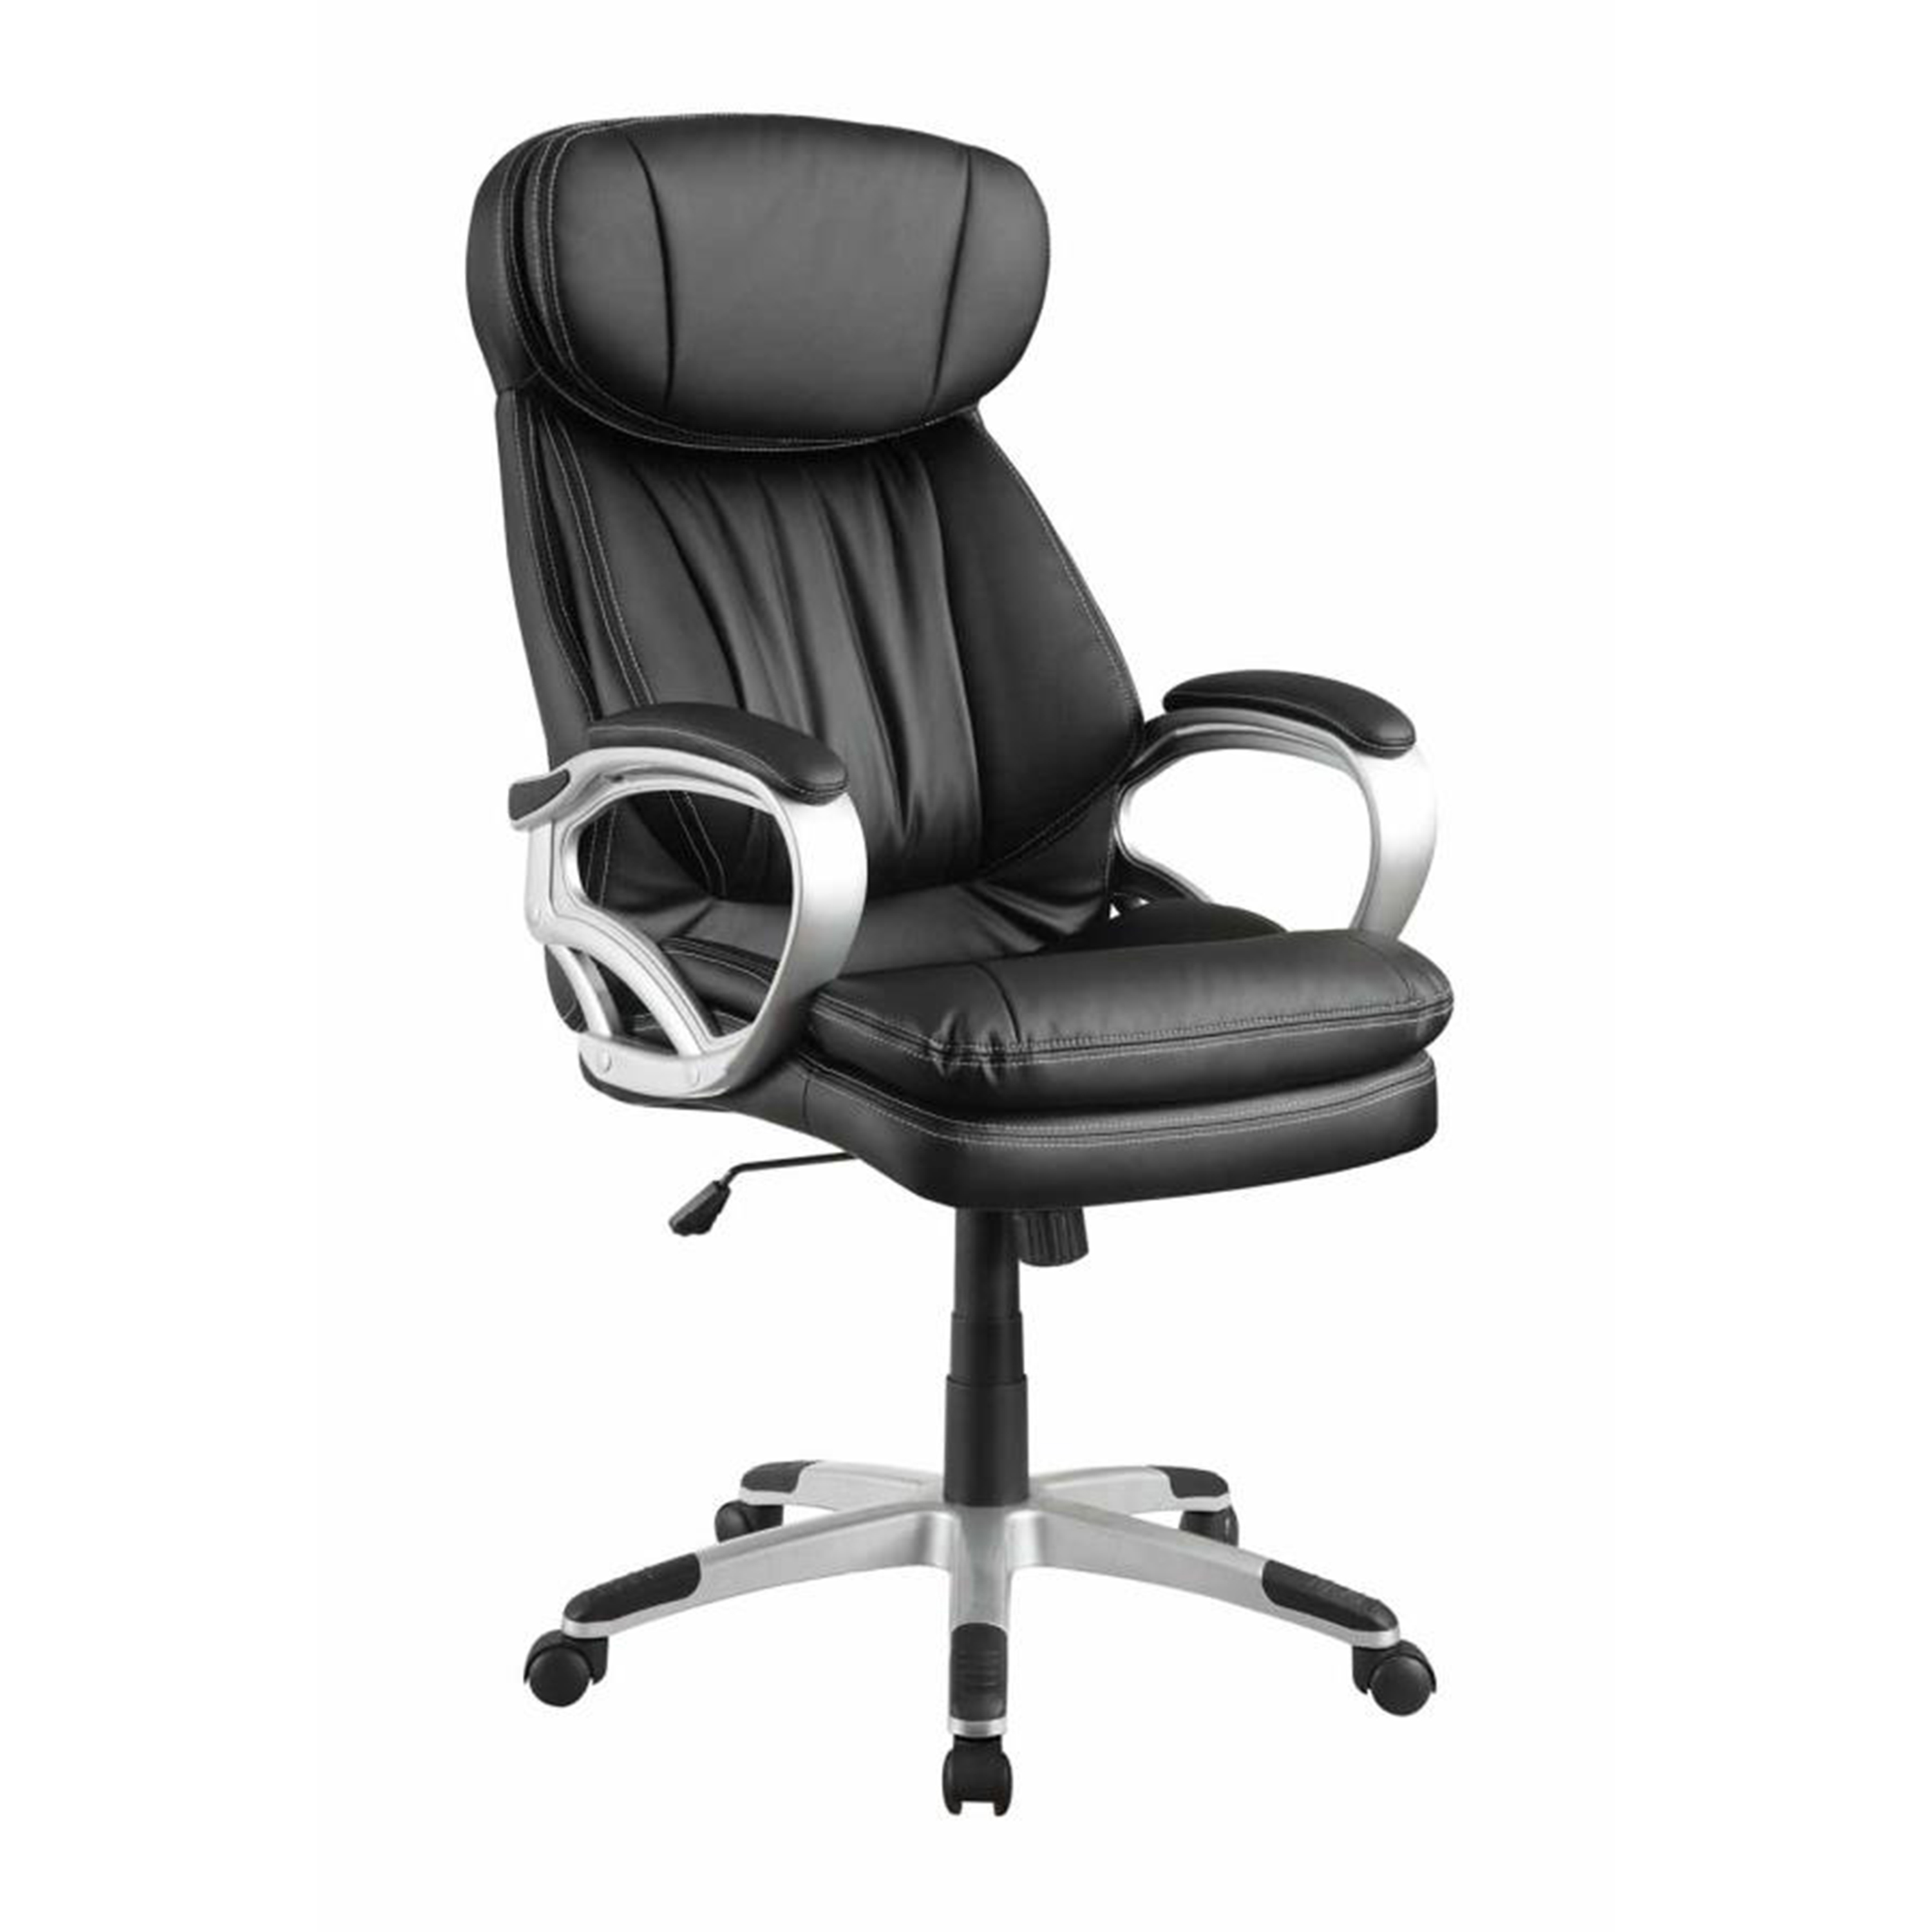 office chairs under 50 2 value city furniture accent venetian worldwide saunder leatherette chair in black